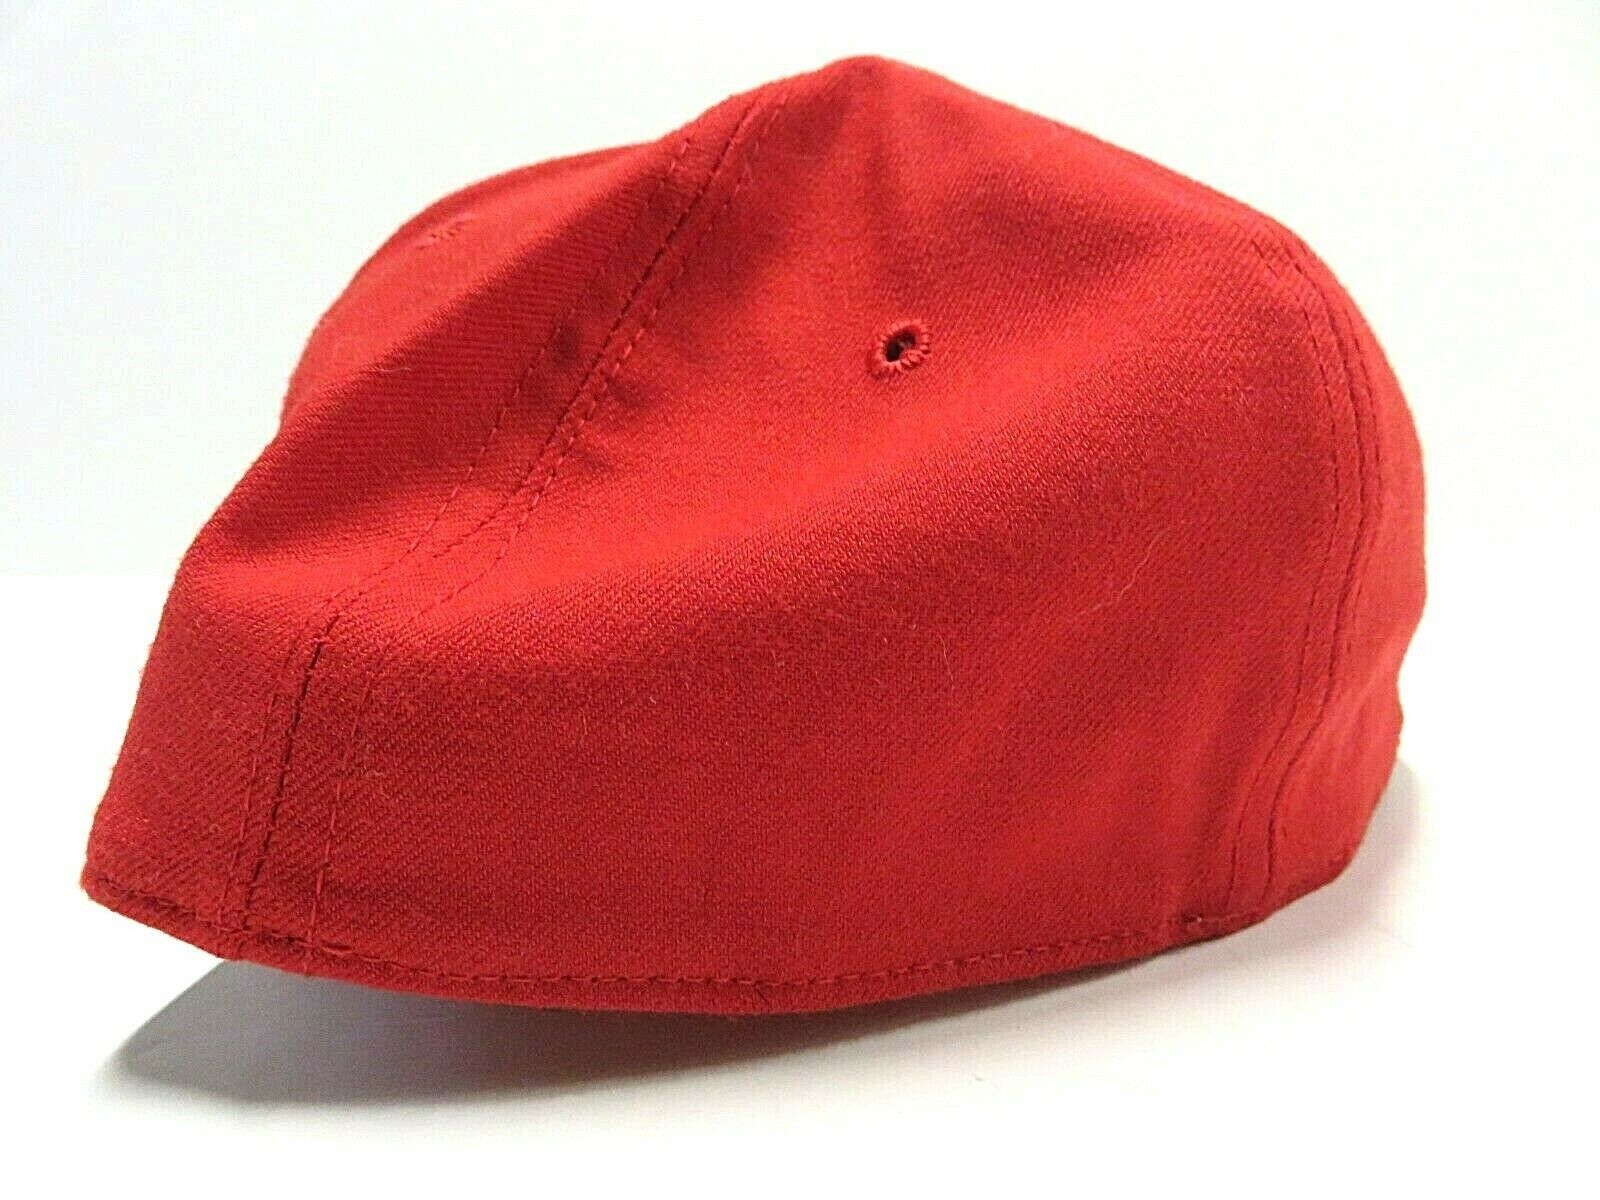 VTG New Era St.Louis Cardinals MLB Baseball Fitted Hat Adult Size 7 3/4 USA Made image 3